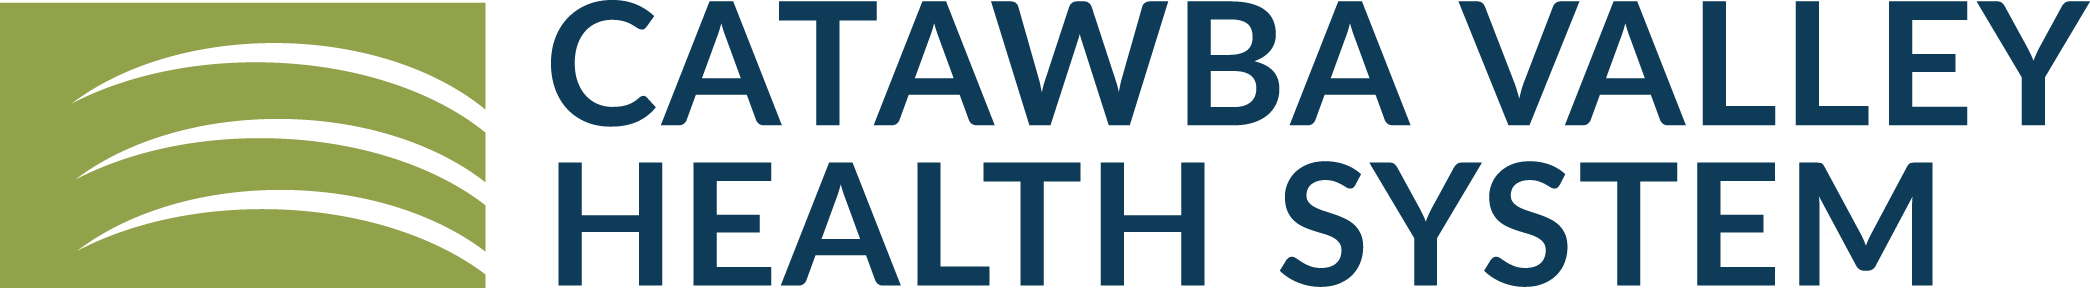 Catawba Valley Health System